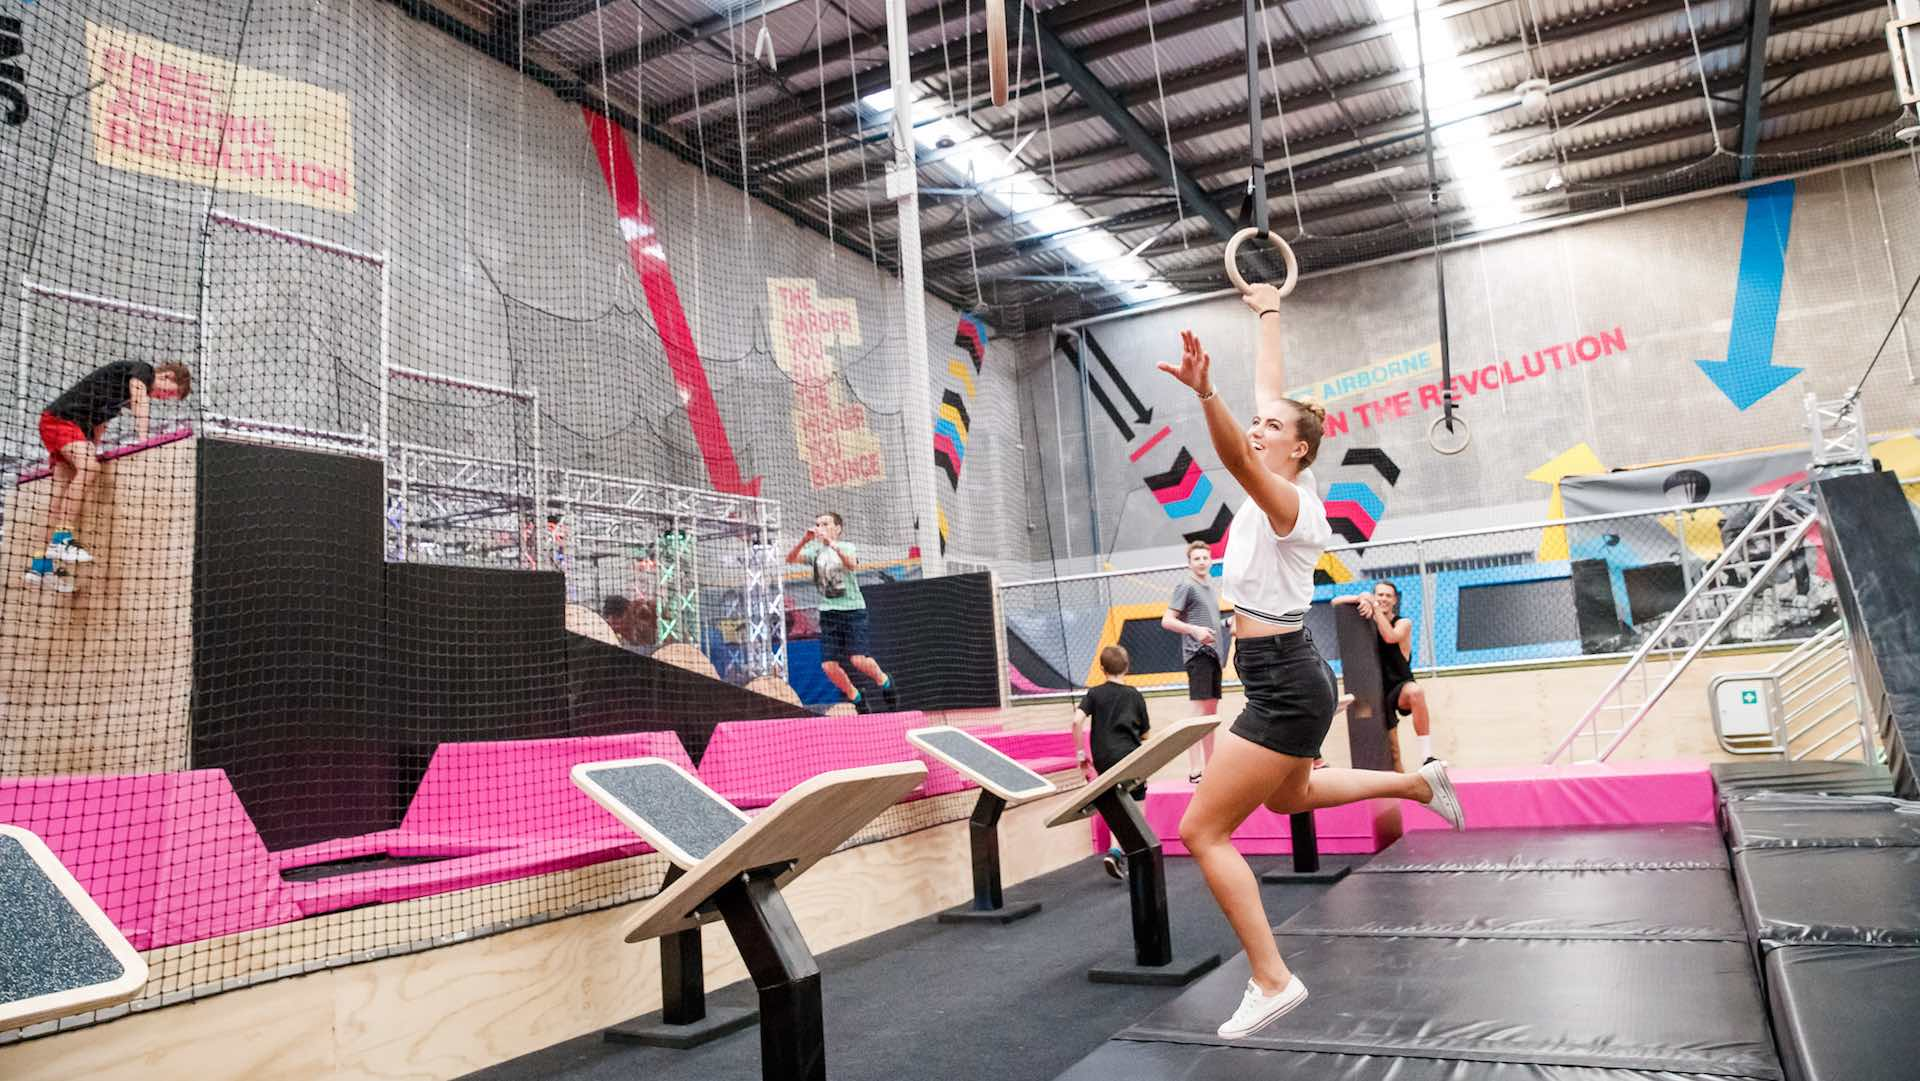 A Jumping Free-For-All at BOUNCE Trampoline Park